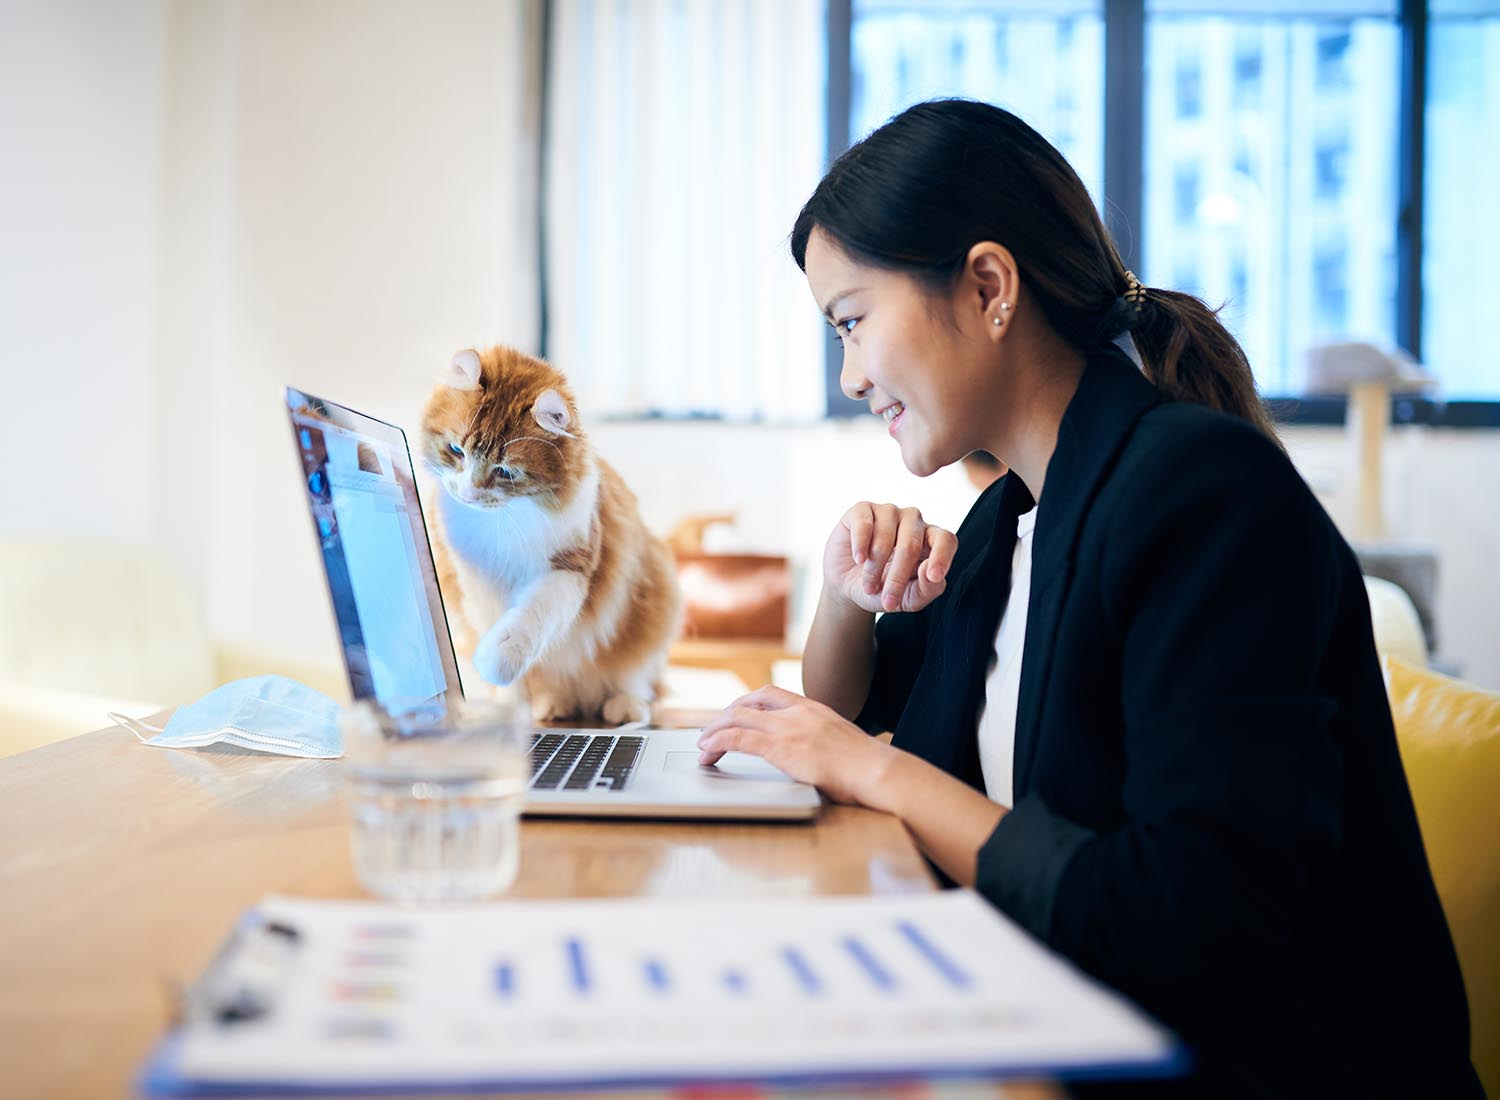 iStock-1221003619 woman working at laptop screen with cat